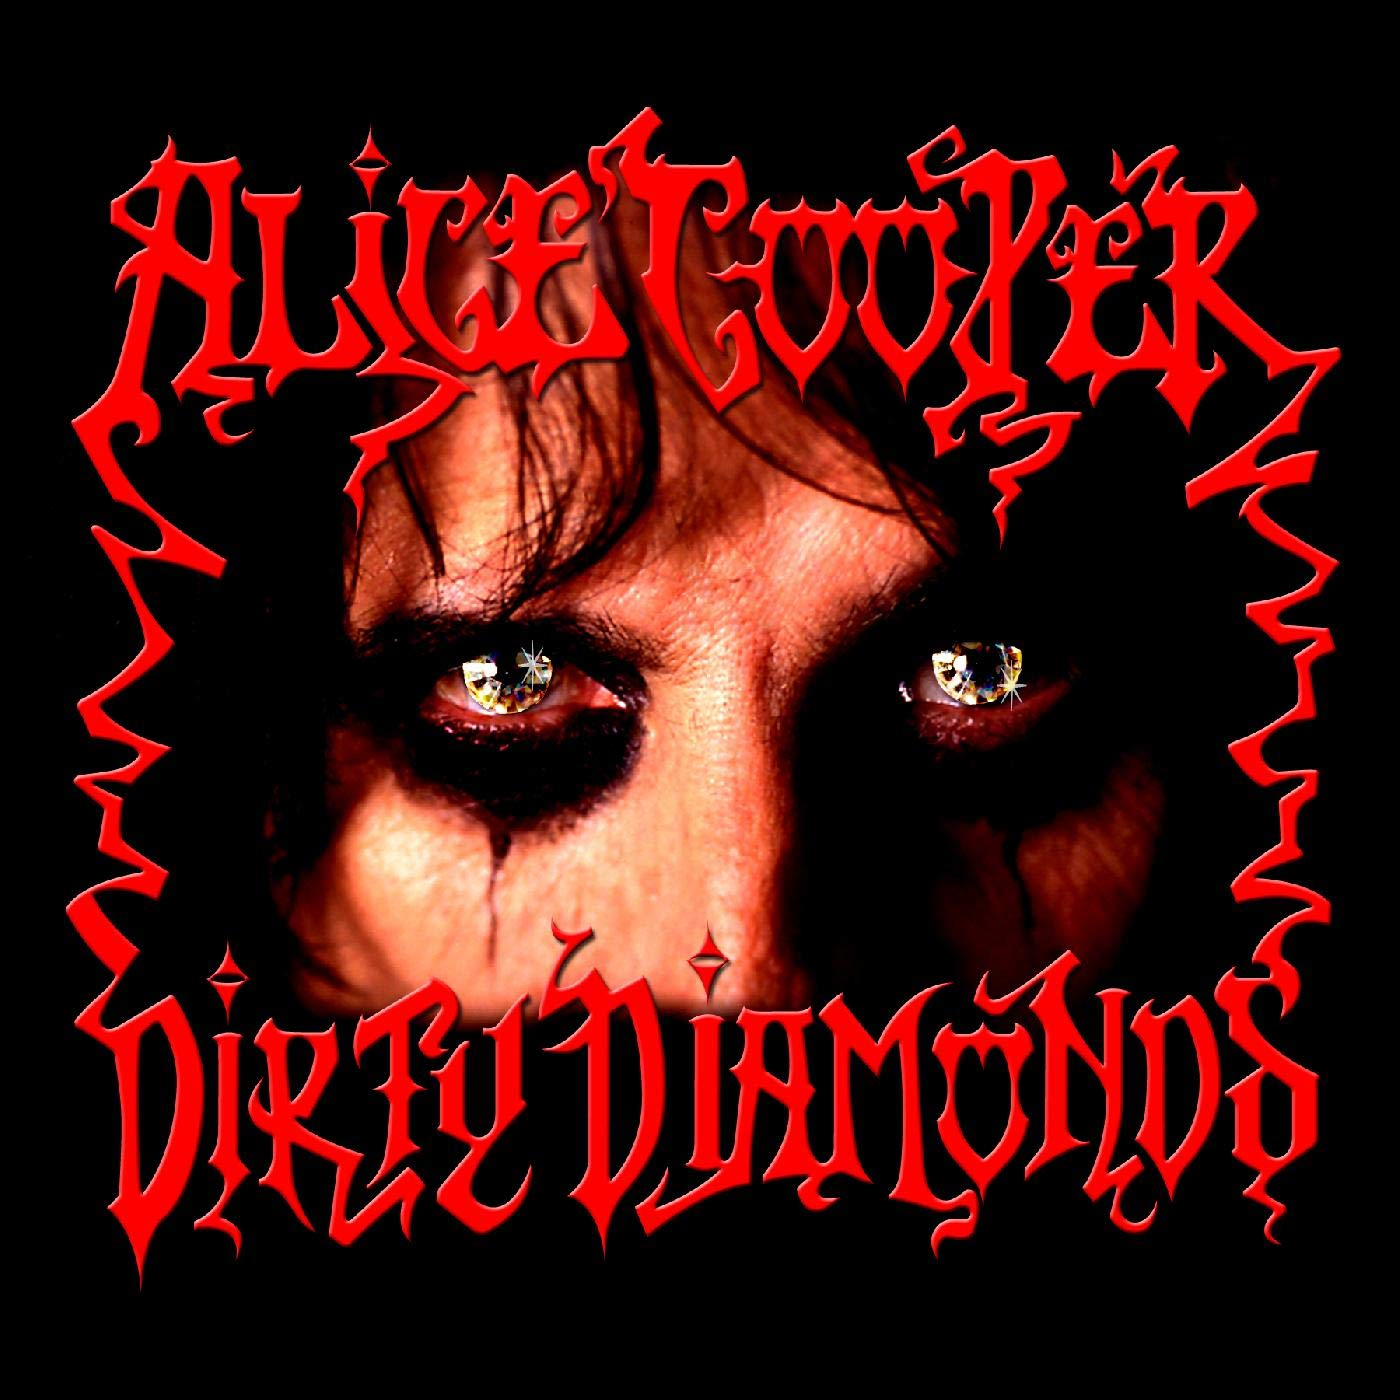 Alice Cooper - Dirty Diamonds [Colored Vinyl] (Red) (Ita)